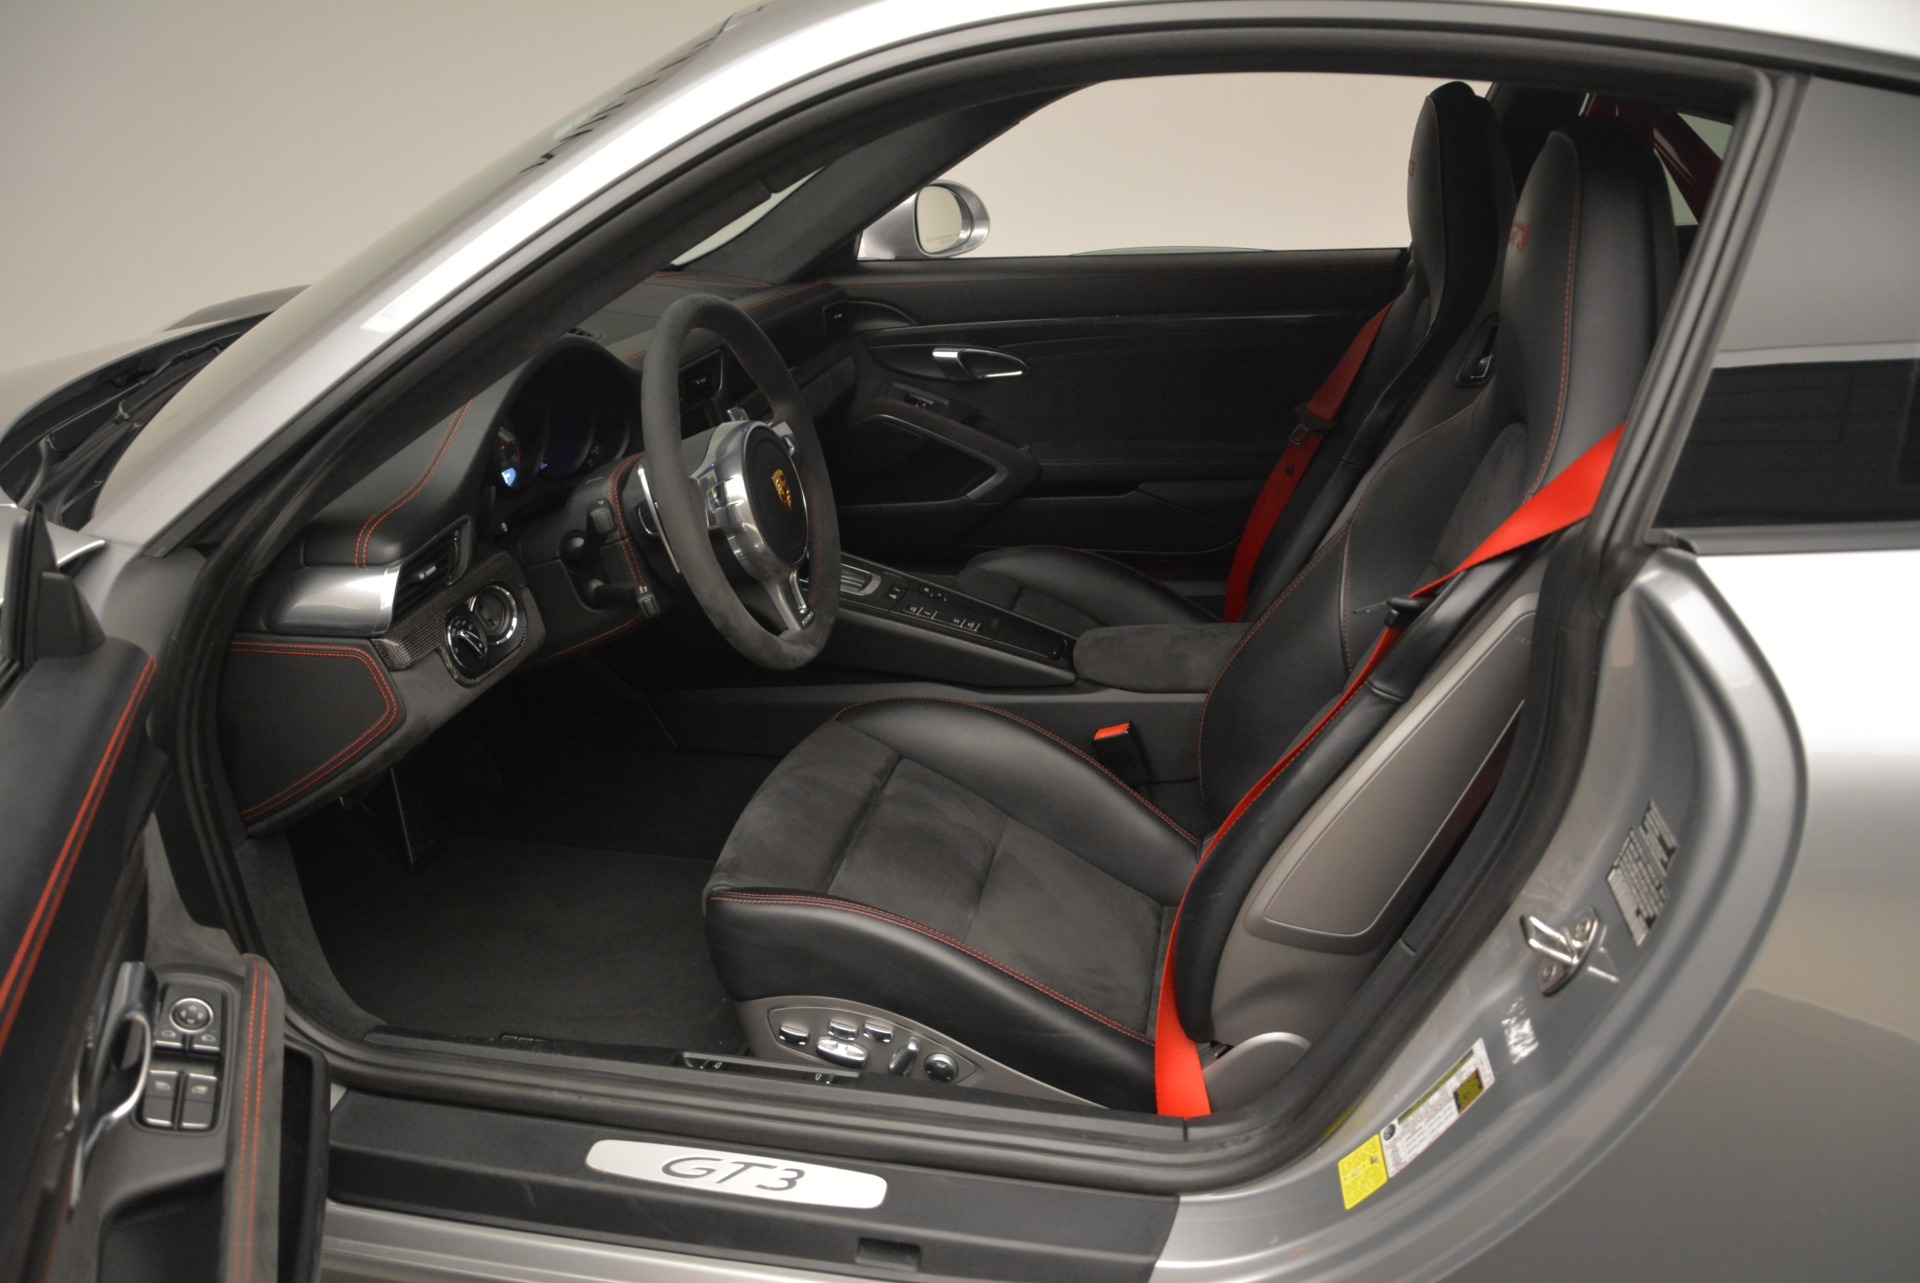 Used 2015 Porsche 911 GT3 For Sale In Greenwich, CT 2196_p19